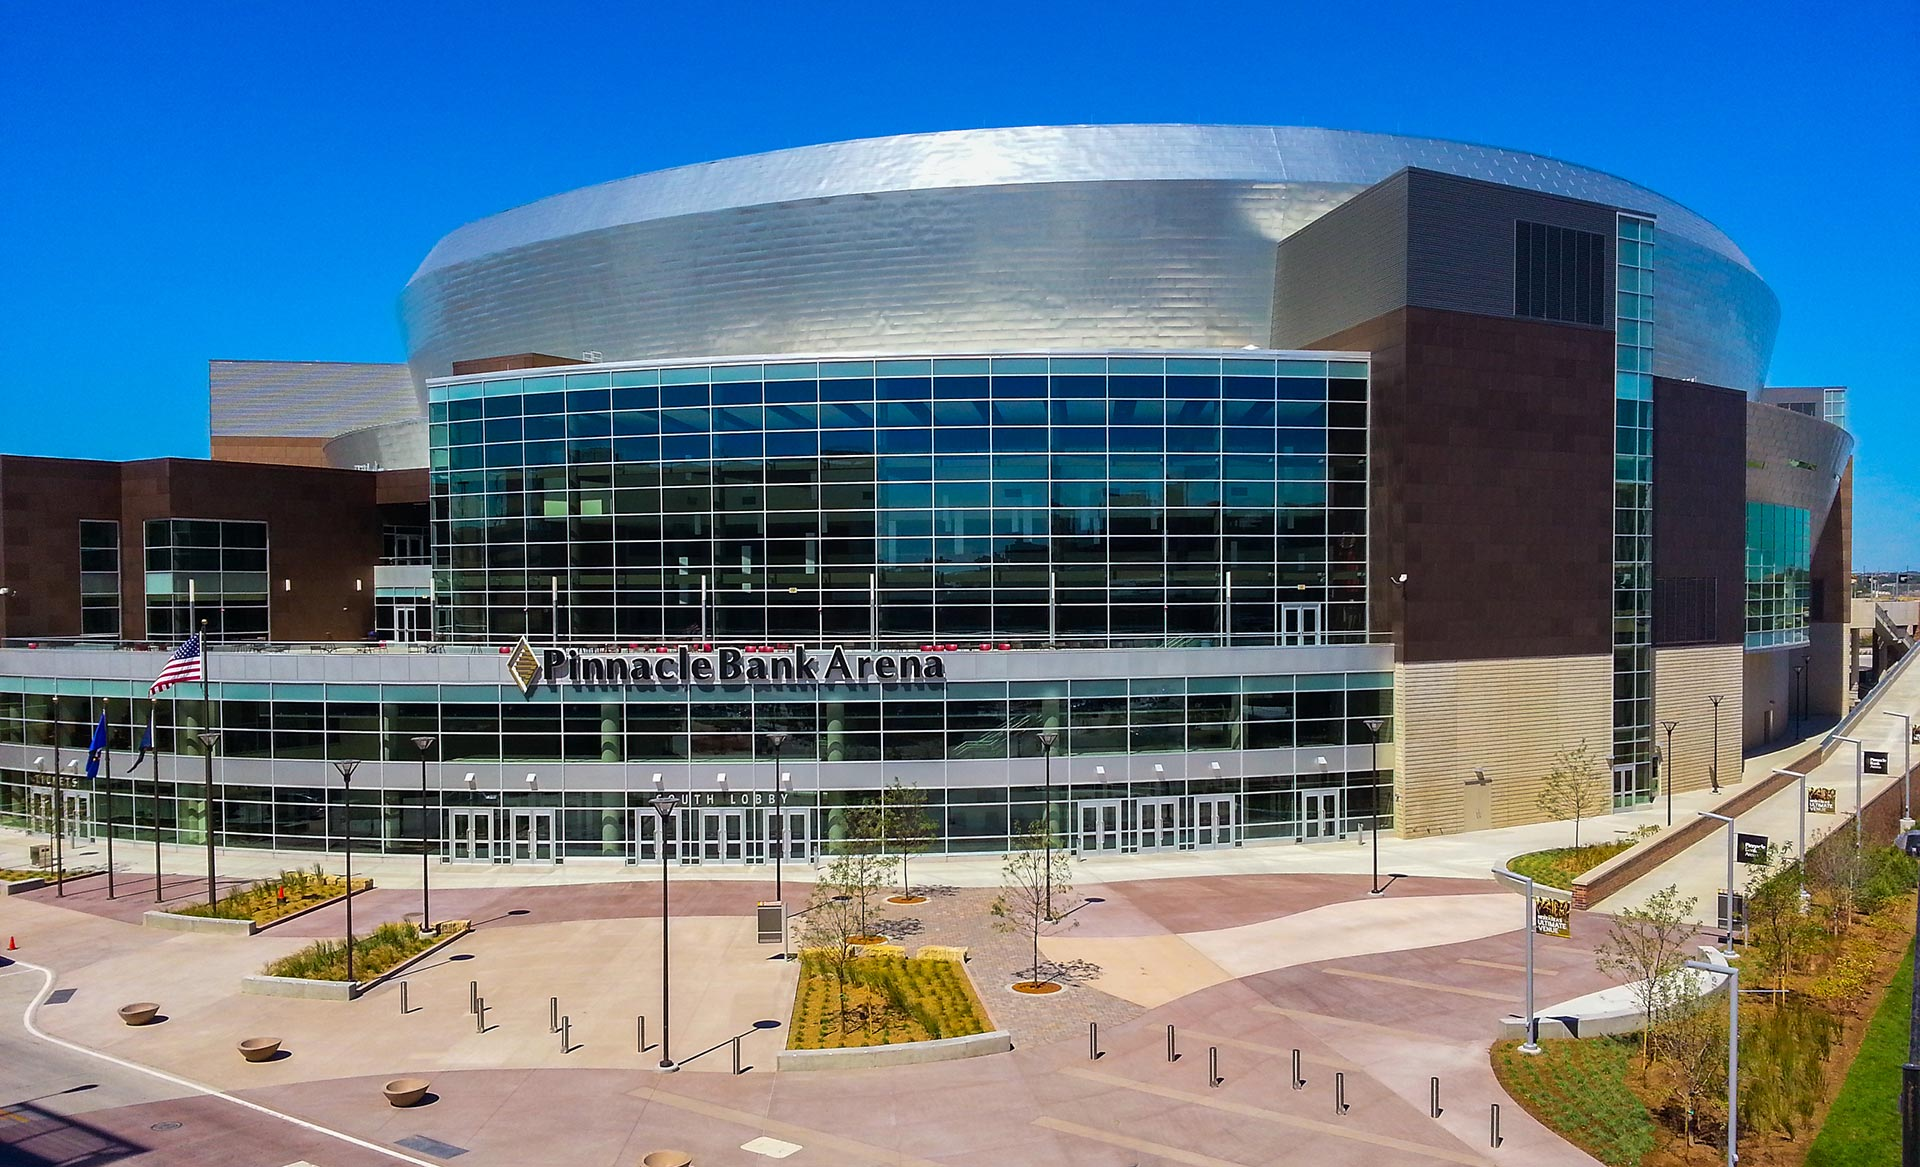 Pinnacle Bank Arena